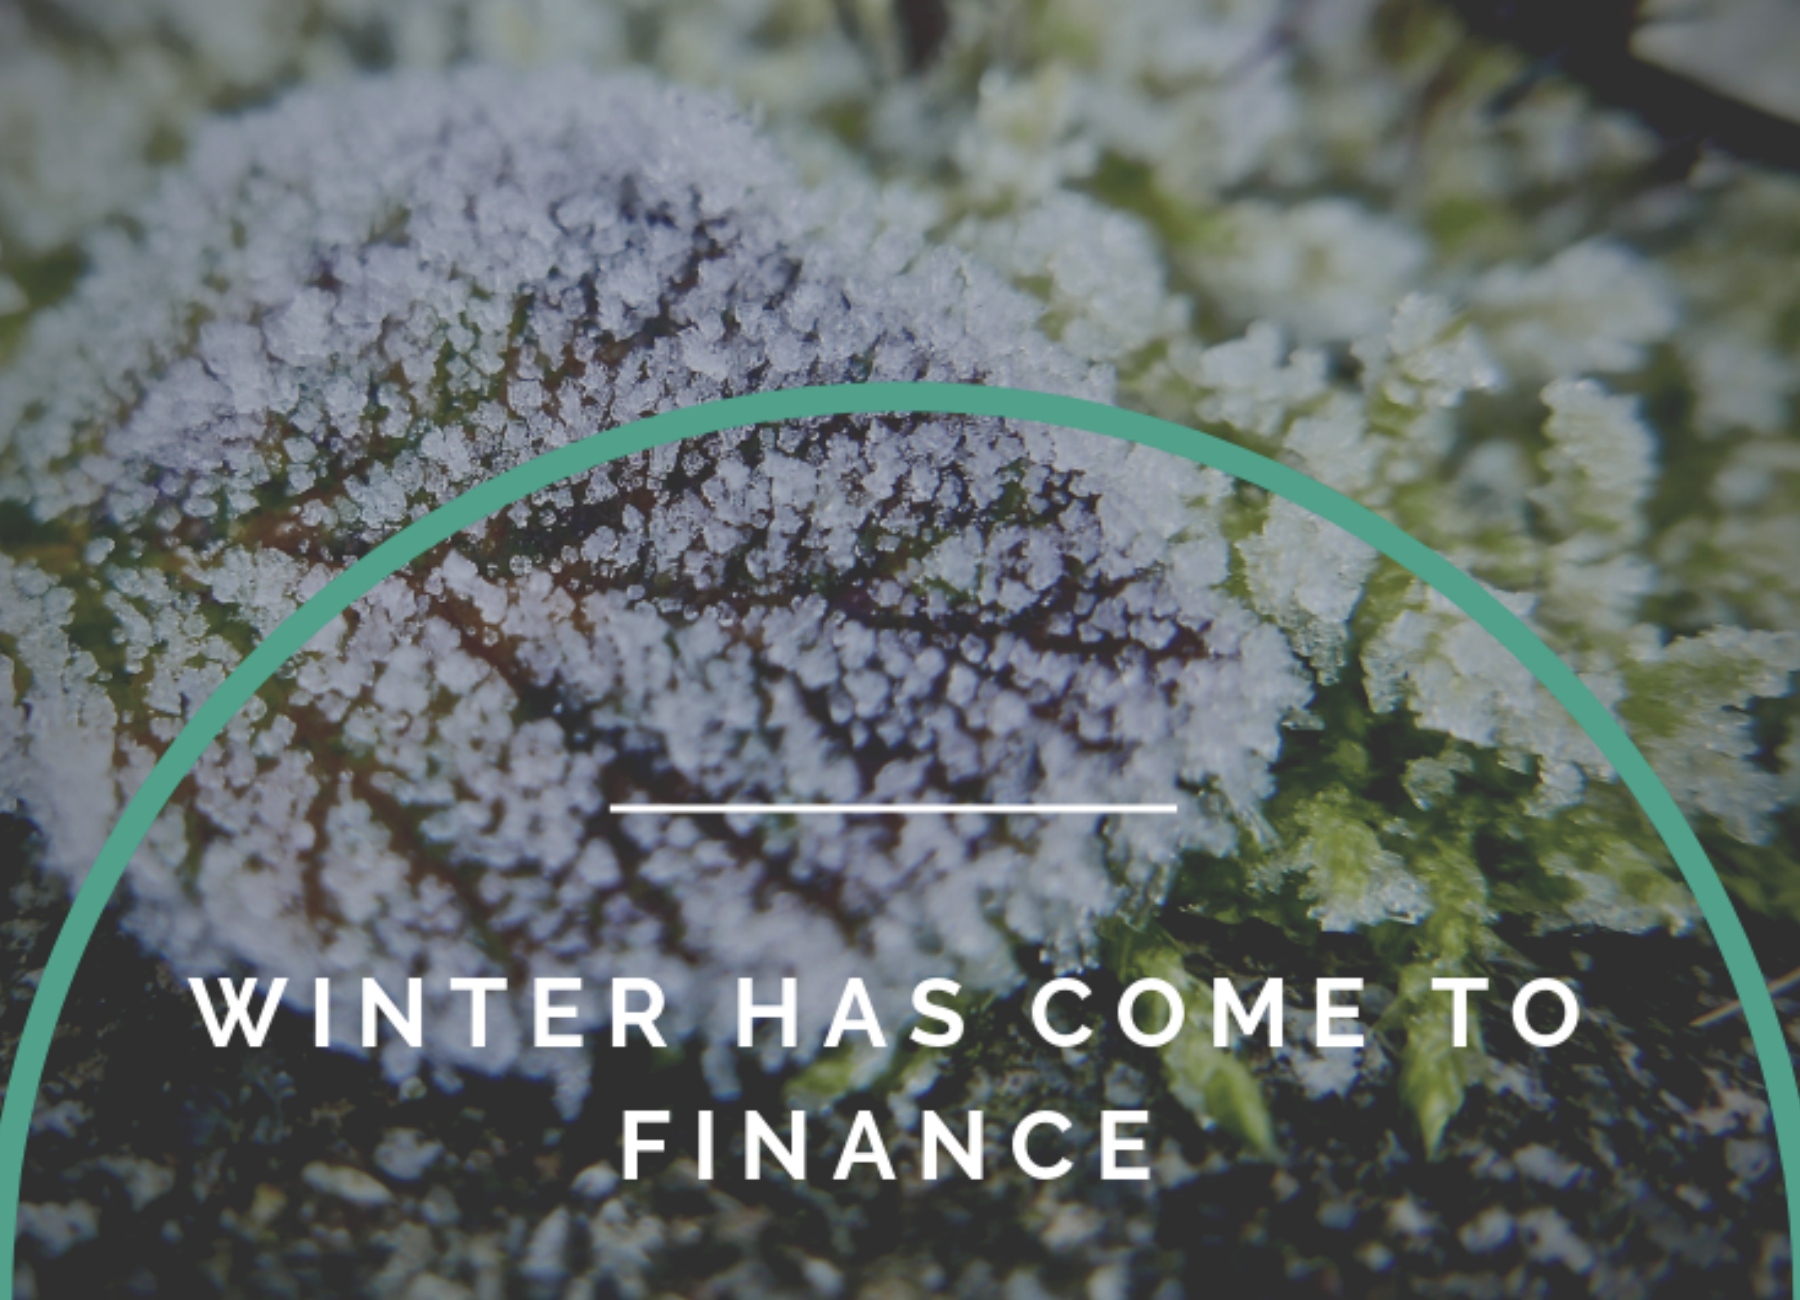 Winter has come to finance - Sony Kapoor and Norfund, September 2019This report shows that the financial system will need to make some deep and fundamental changes, the biggest of which is to focus on intermediating developed economy savings, where investment opportunities are limited, towards promising opportunities in developing economies which are short of investible savings.